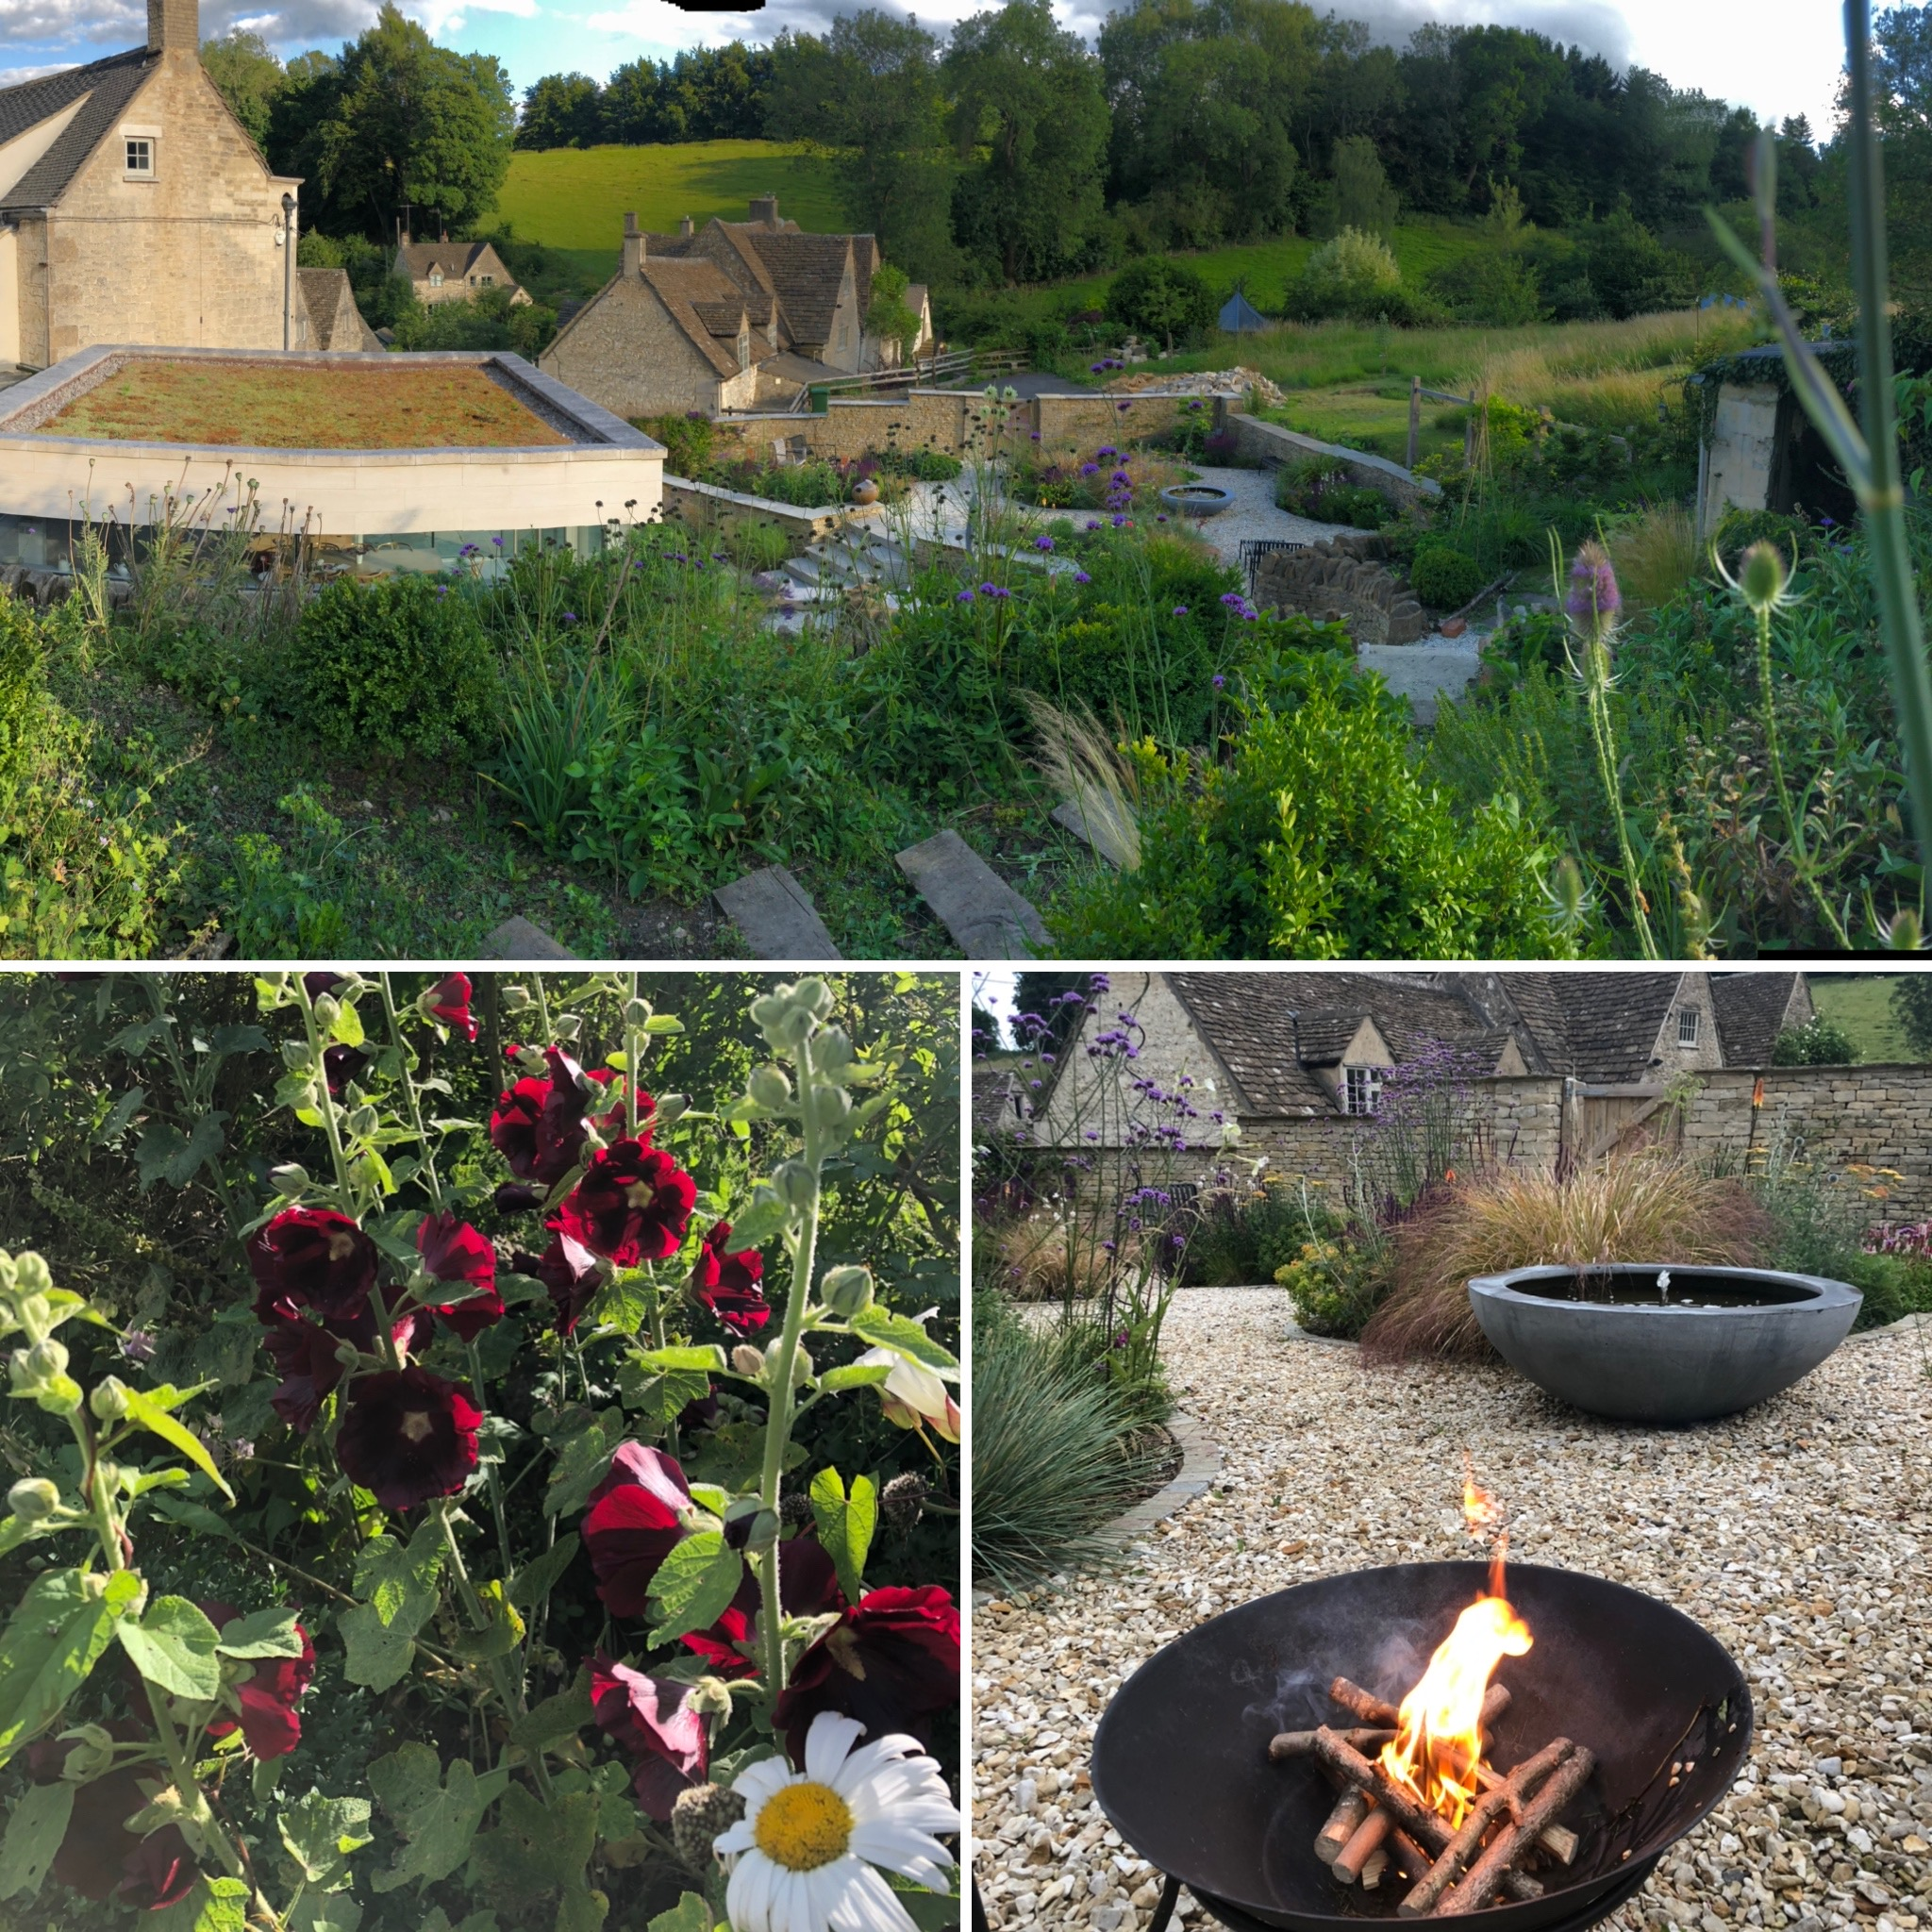 Garden Views: Panorama From Our New Gate, Hollyhocks and First Use Of The New Fire Pit